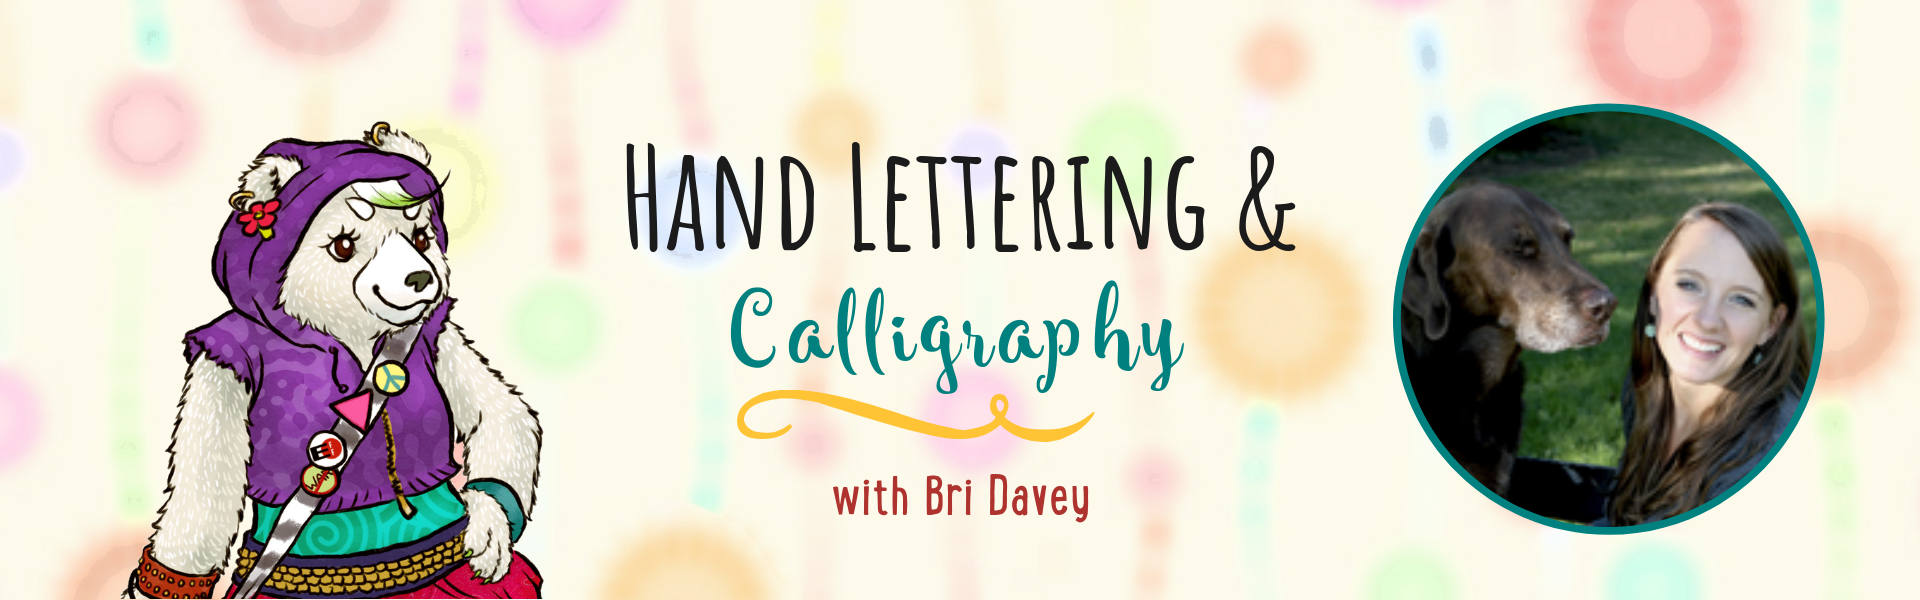 Hand Lettering and Calligraphy with Bri Davey at the Children's Book Academy